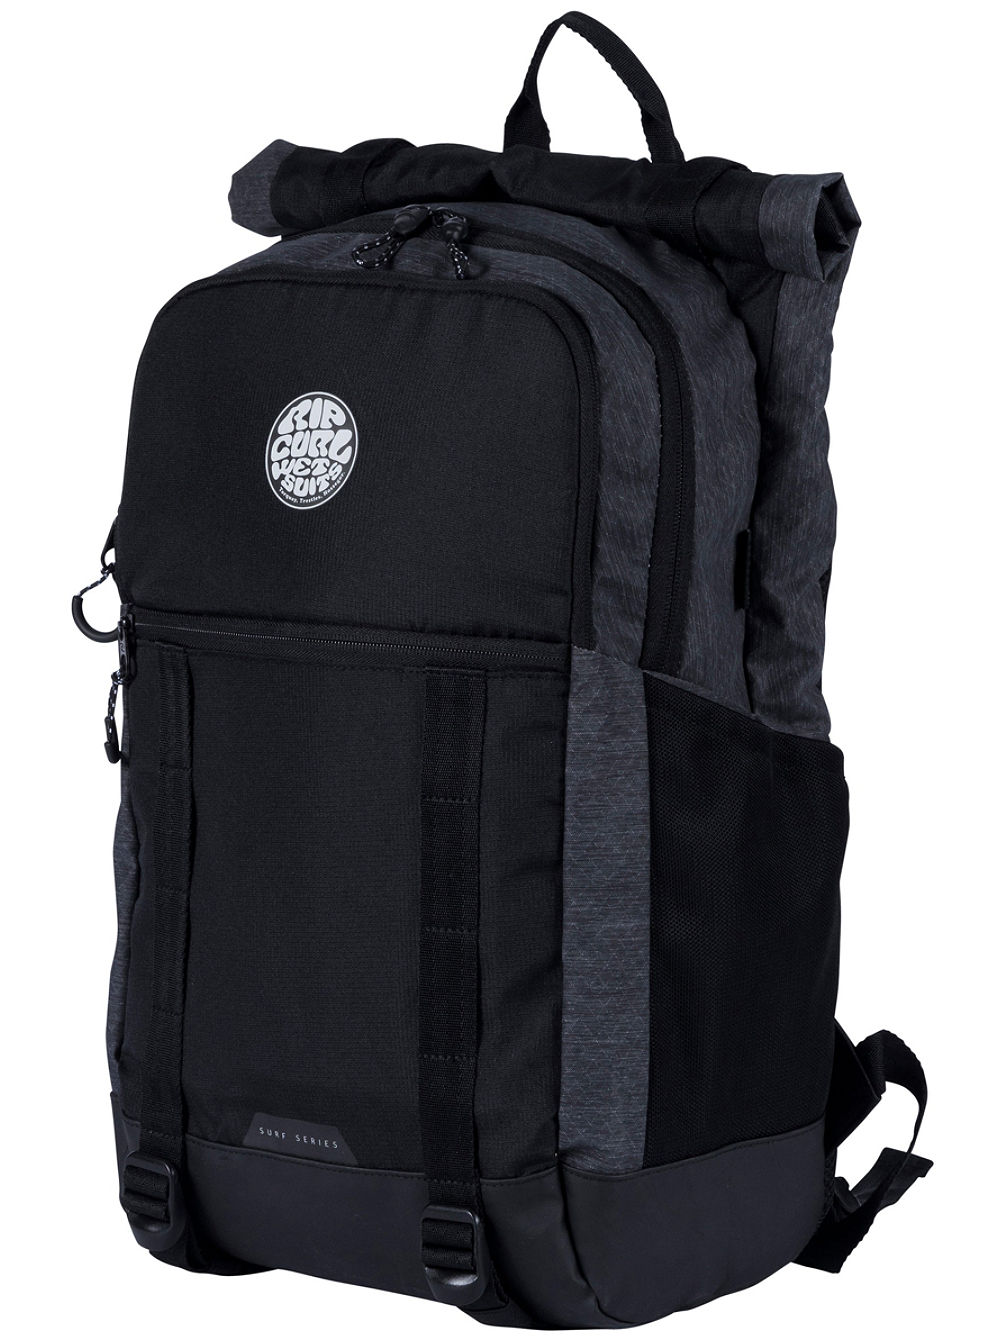 Dawn Patrol 2.0 Surf Backpack